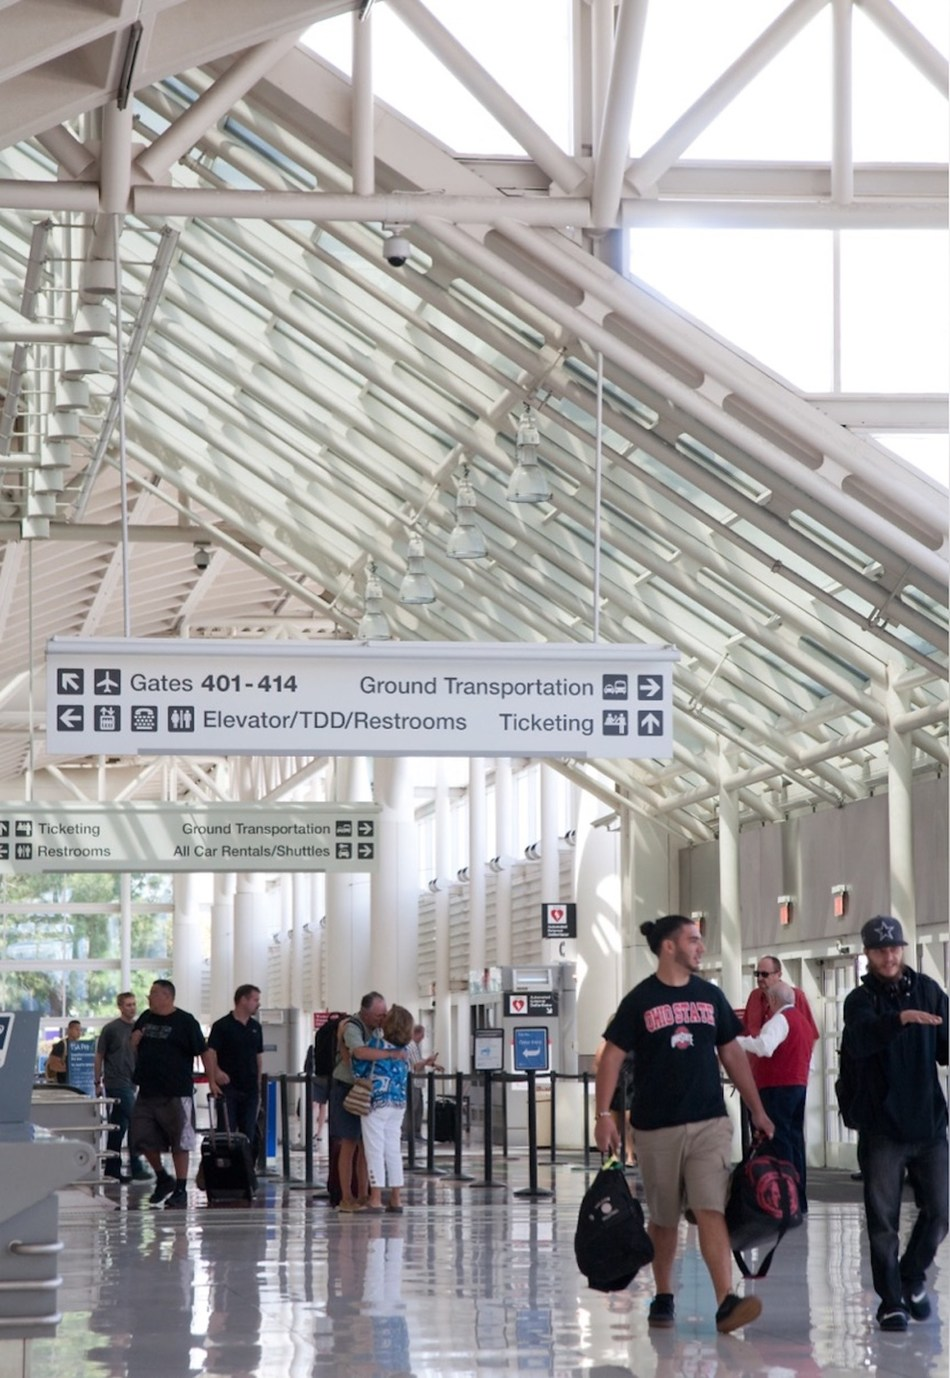 Ontario International Airport continued its strong growth in passenger traffic during October.